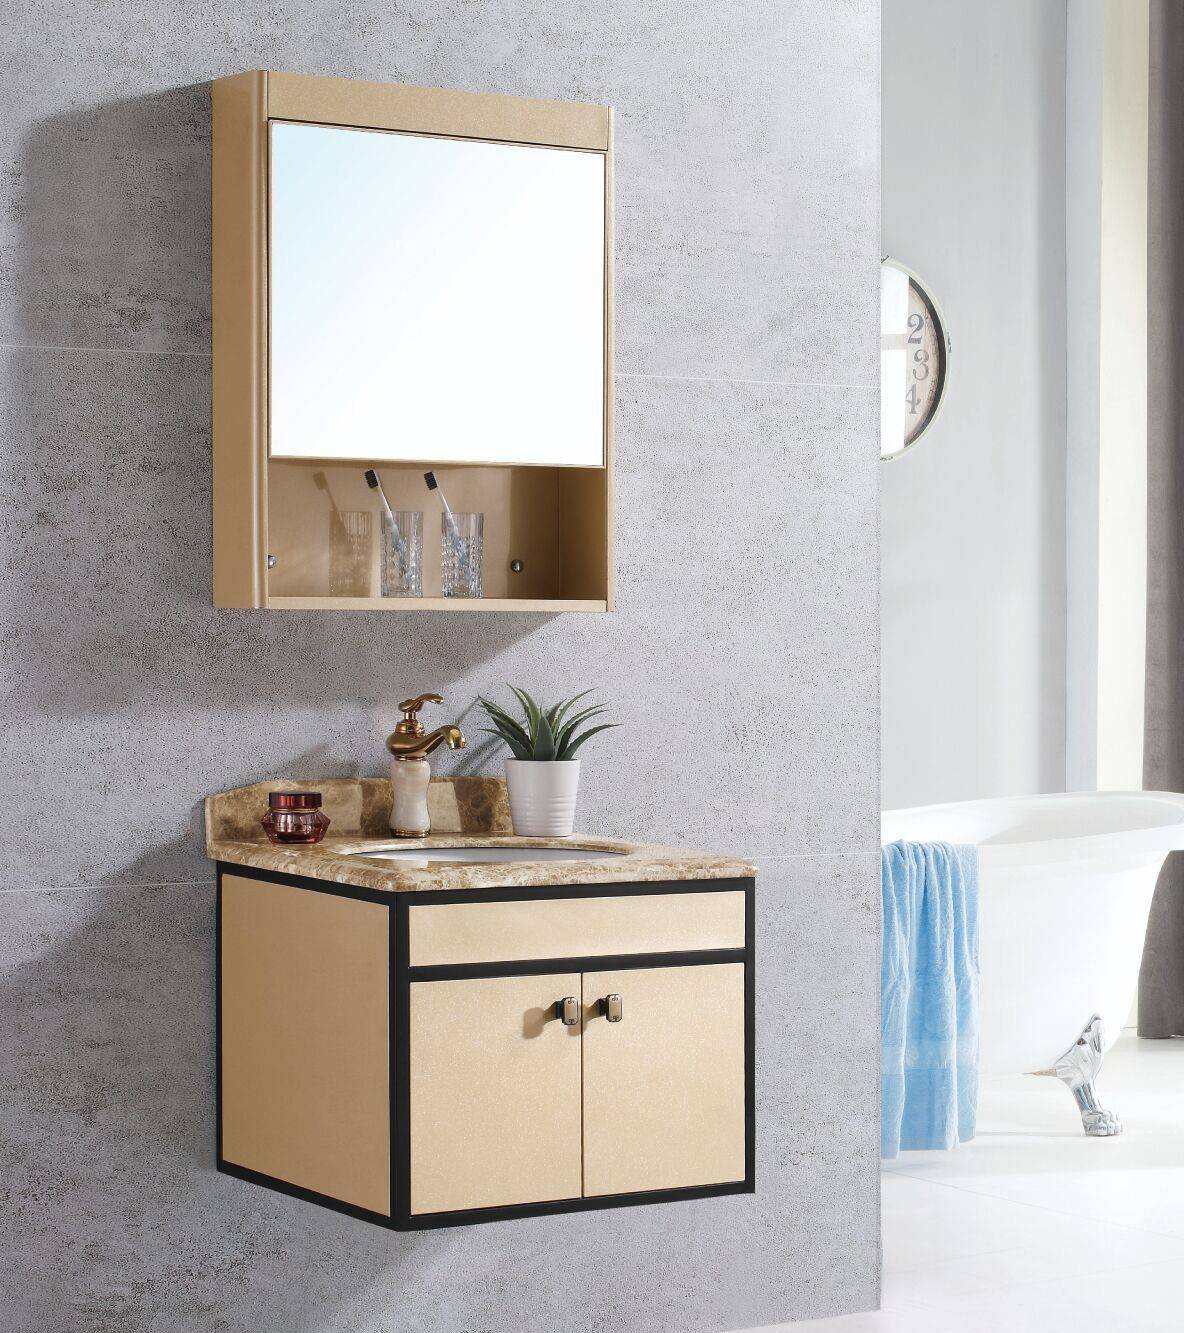 Good Quality Bathroom Furniture In 2020 Bathroom Furniture Uk Bathroom Furniture Design Custom Bathroom Furniture